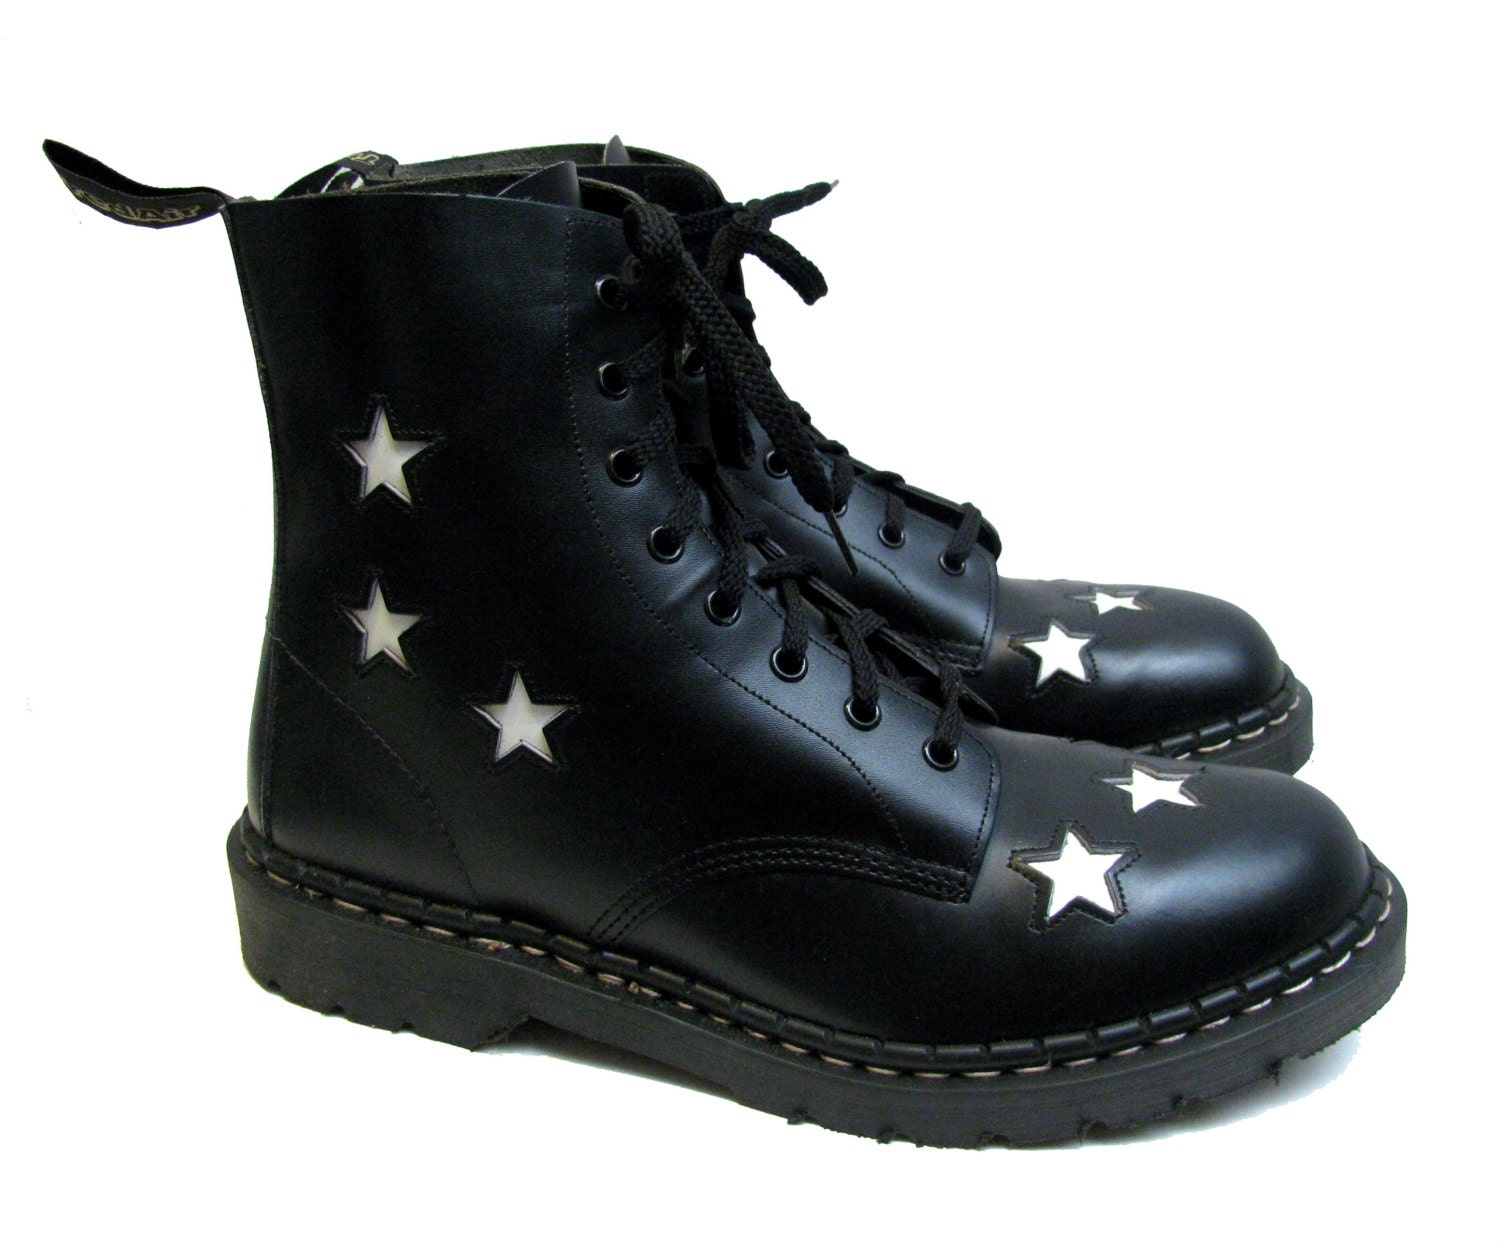 mens tredair uk boots vintage black with white leather